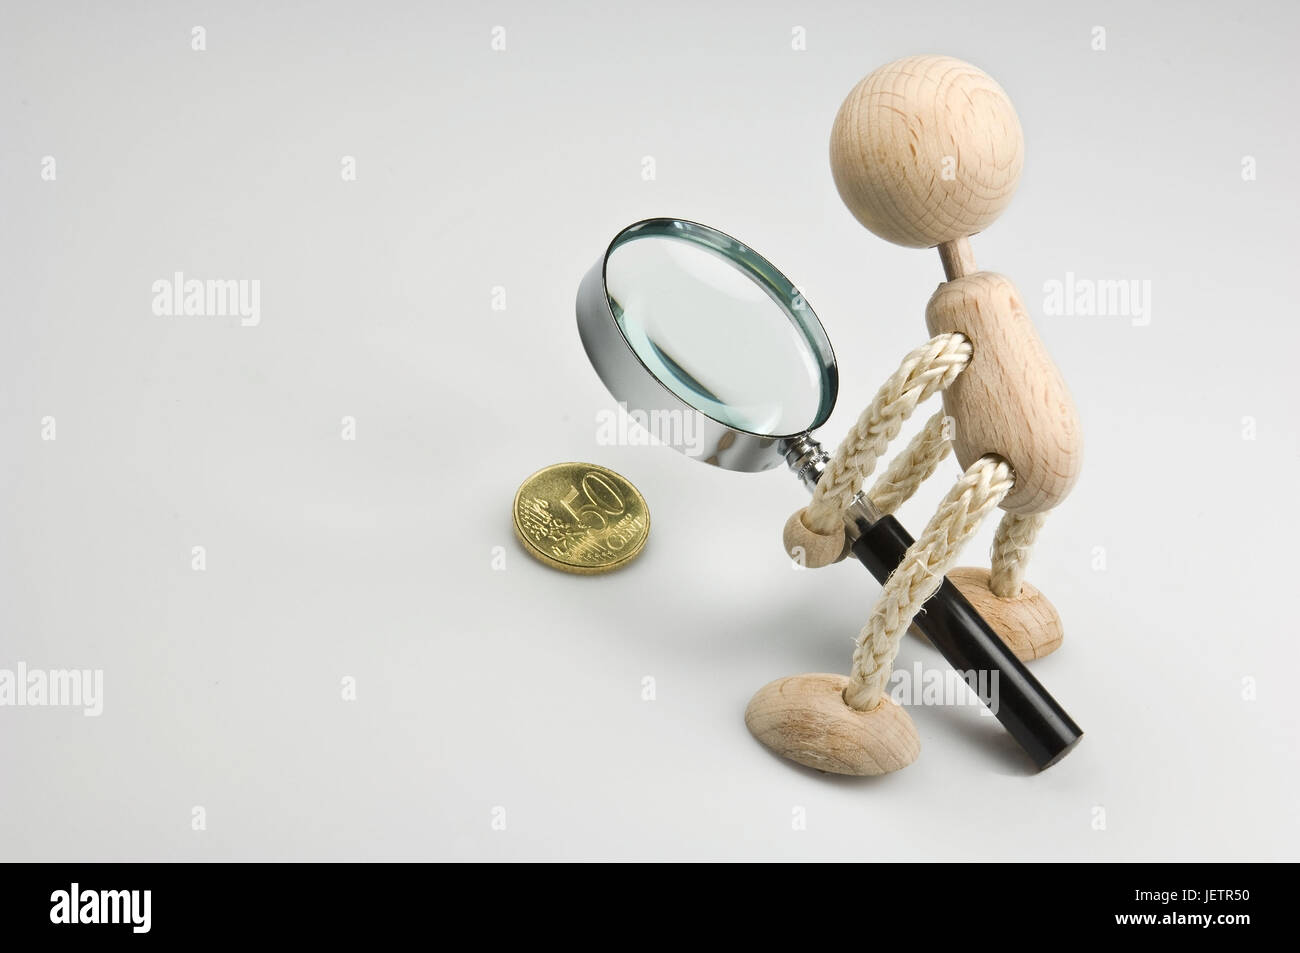 Wooden figure holds a magnifying glass about a 50 euro cent coin, Holzfigur haelt eine Lupe ueber ein 50-Eurocent - Stock Image